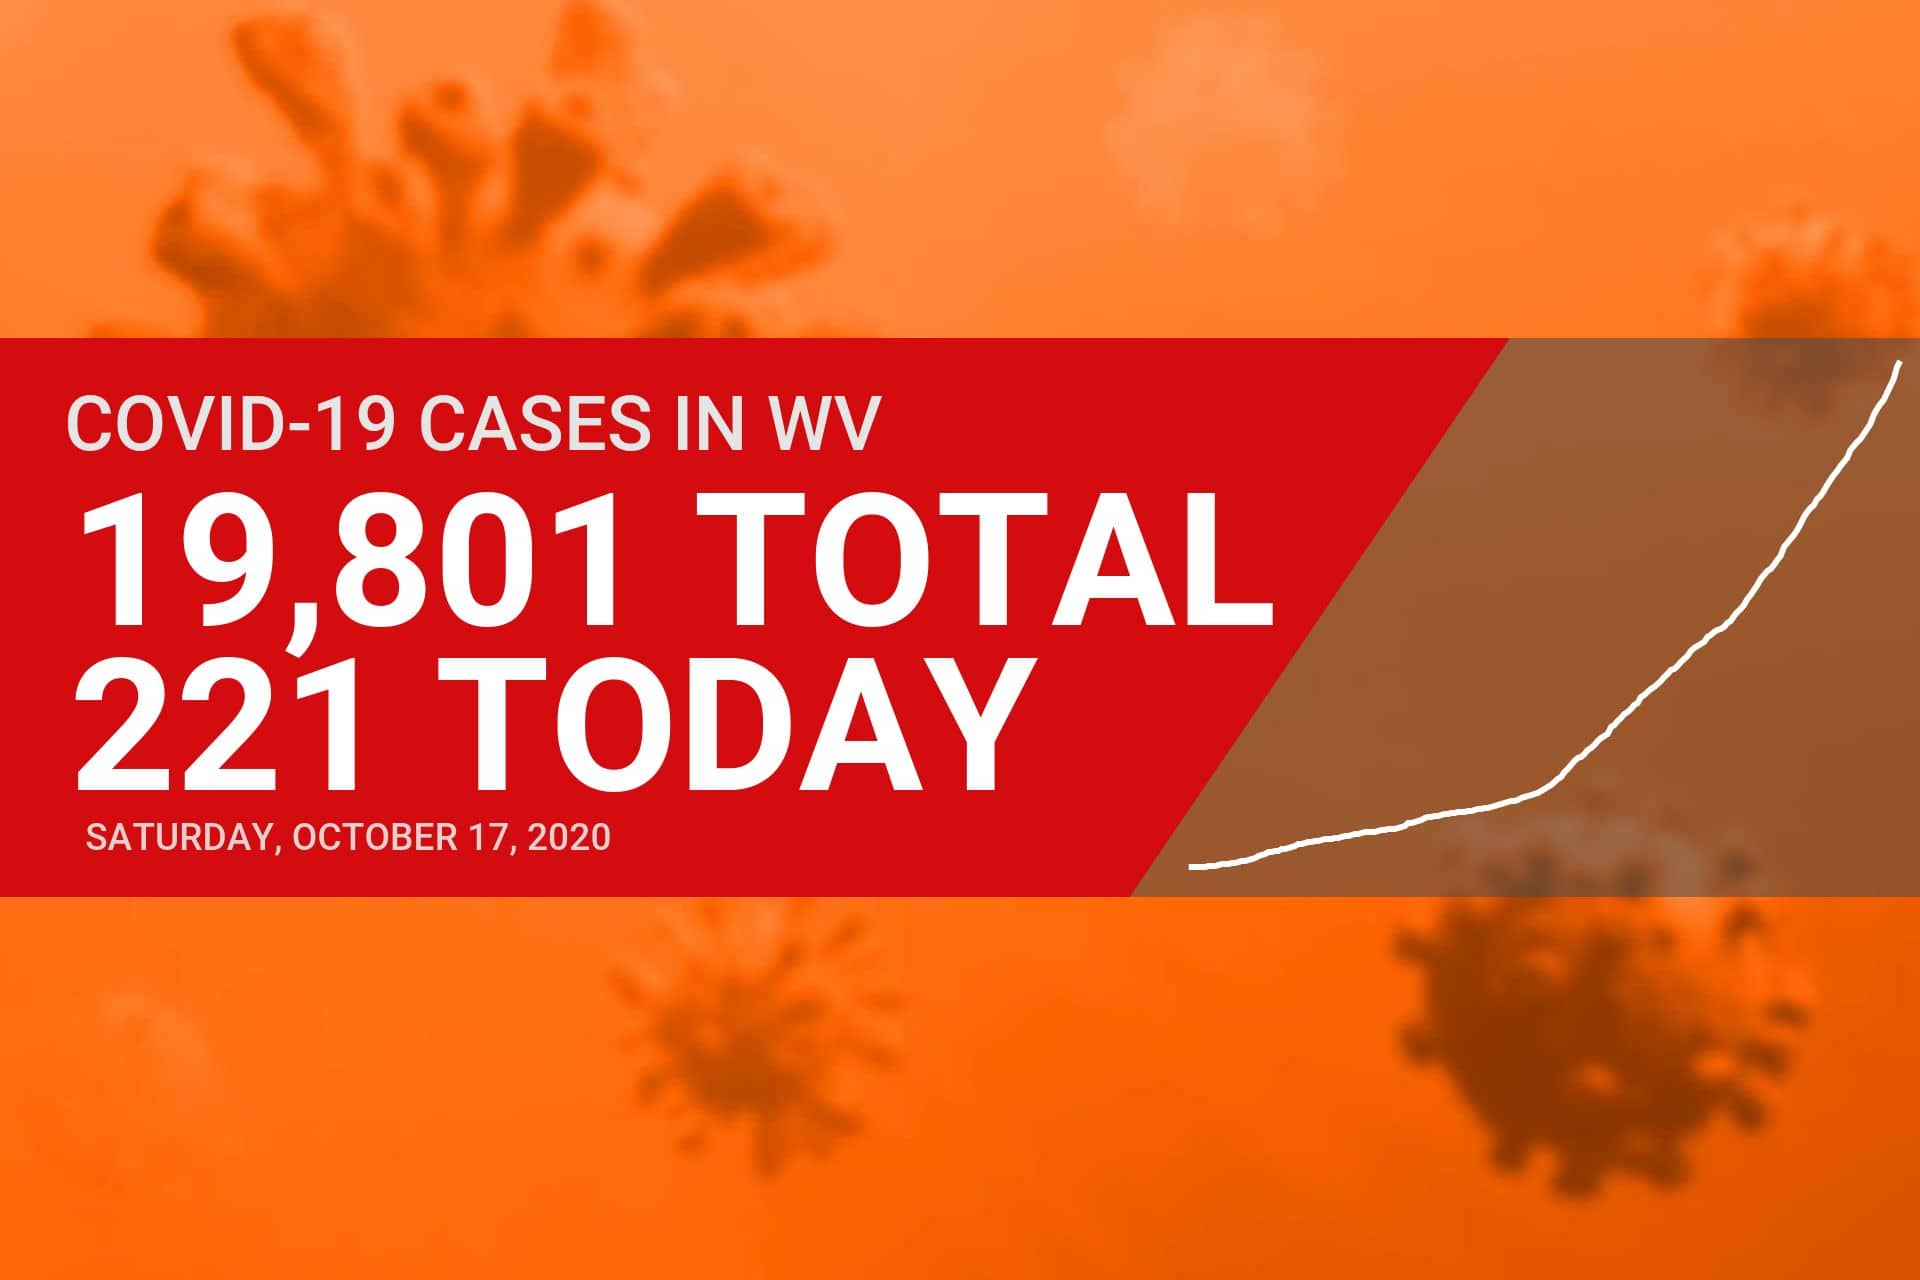 Upshur County returns to orange with six new COVID-19 cases Saturday